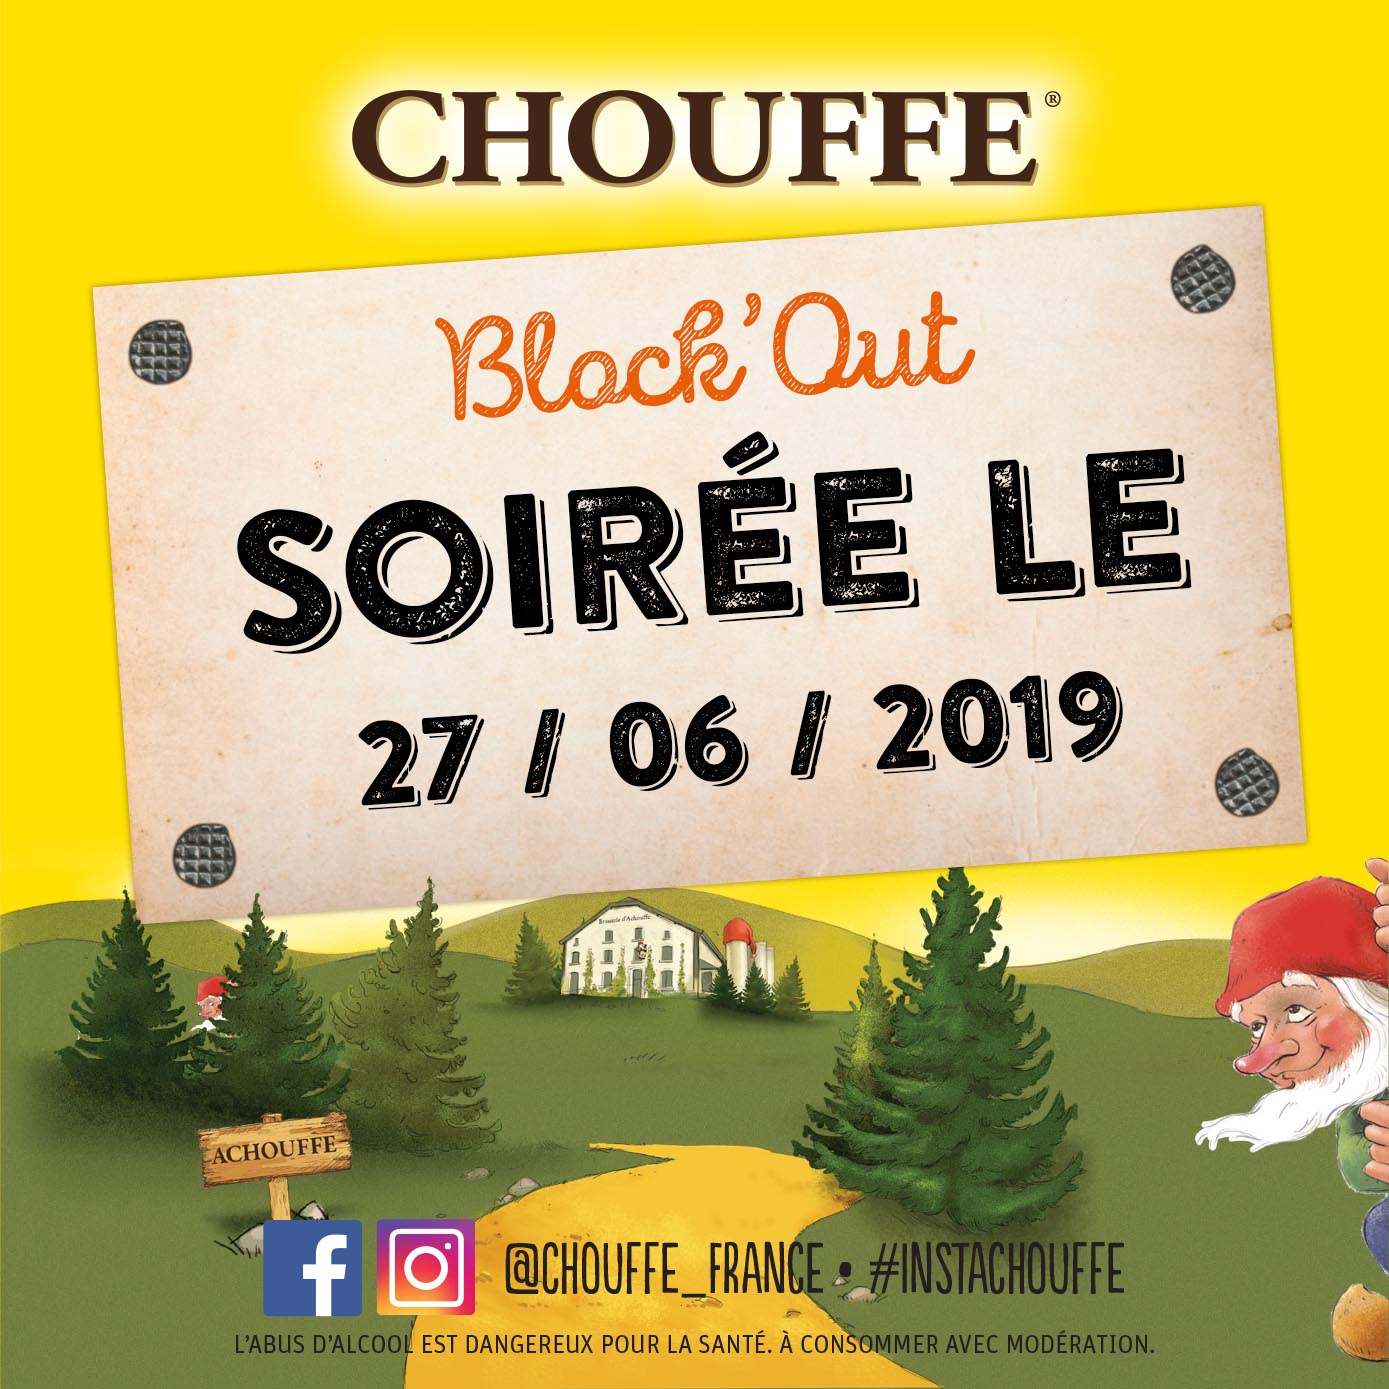 Block'Out Barbecue and Chouffe Party !!